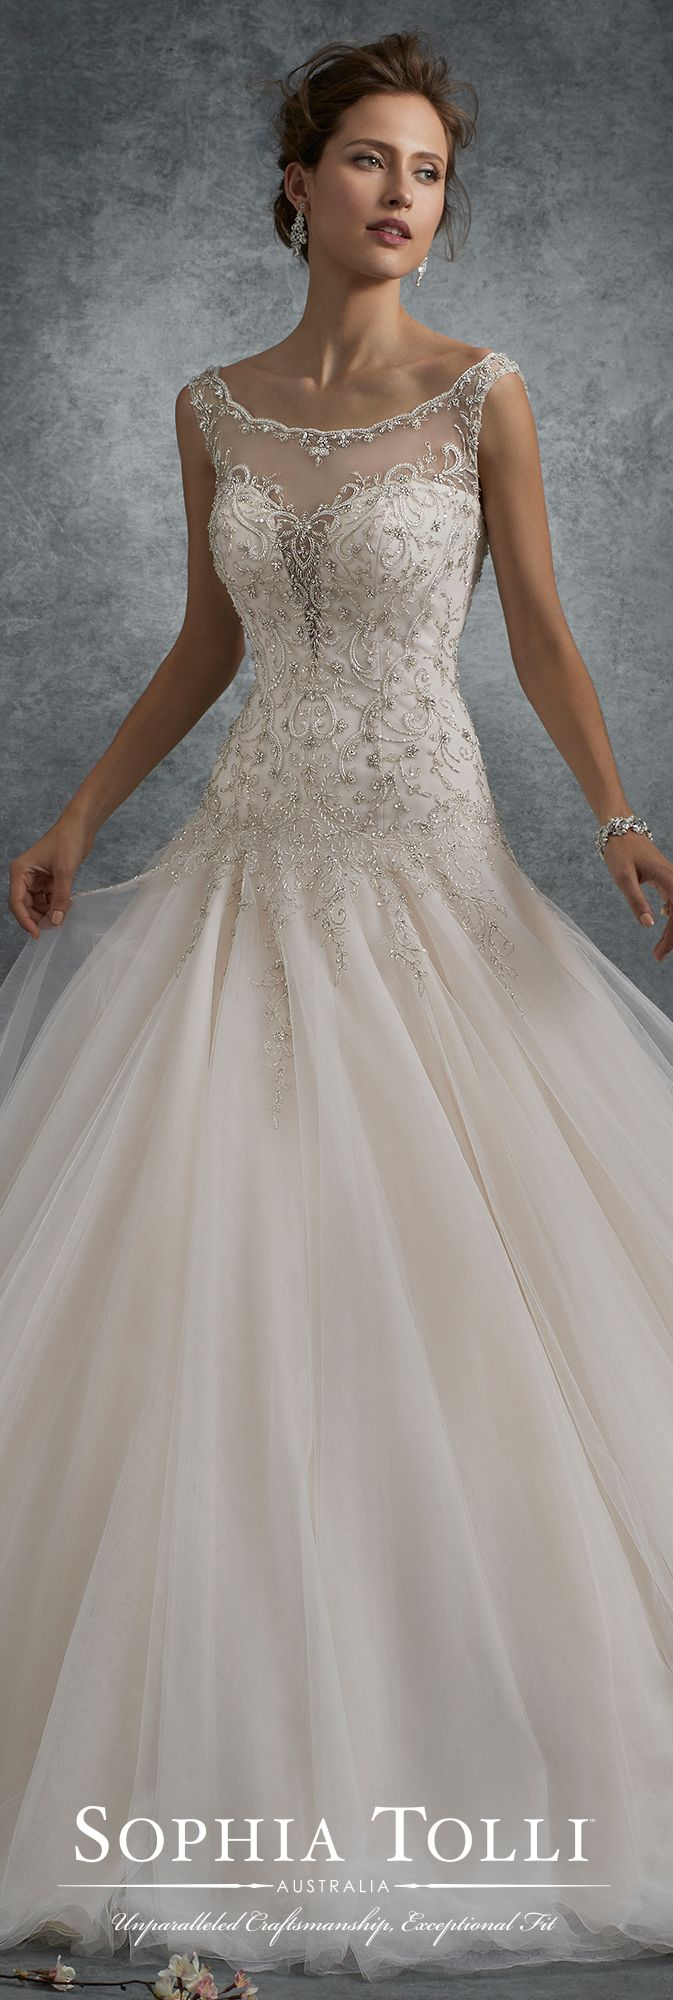 Sophia Tolli Fall 2017 Wedding Gown Collection - Style No. Y21748 Ursa - sleeveless tulle ball gown wedding dress with embroidered plunging sweetheart bodice with dropped waist and cap sleeves